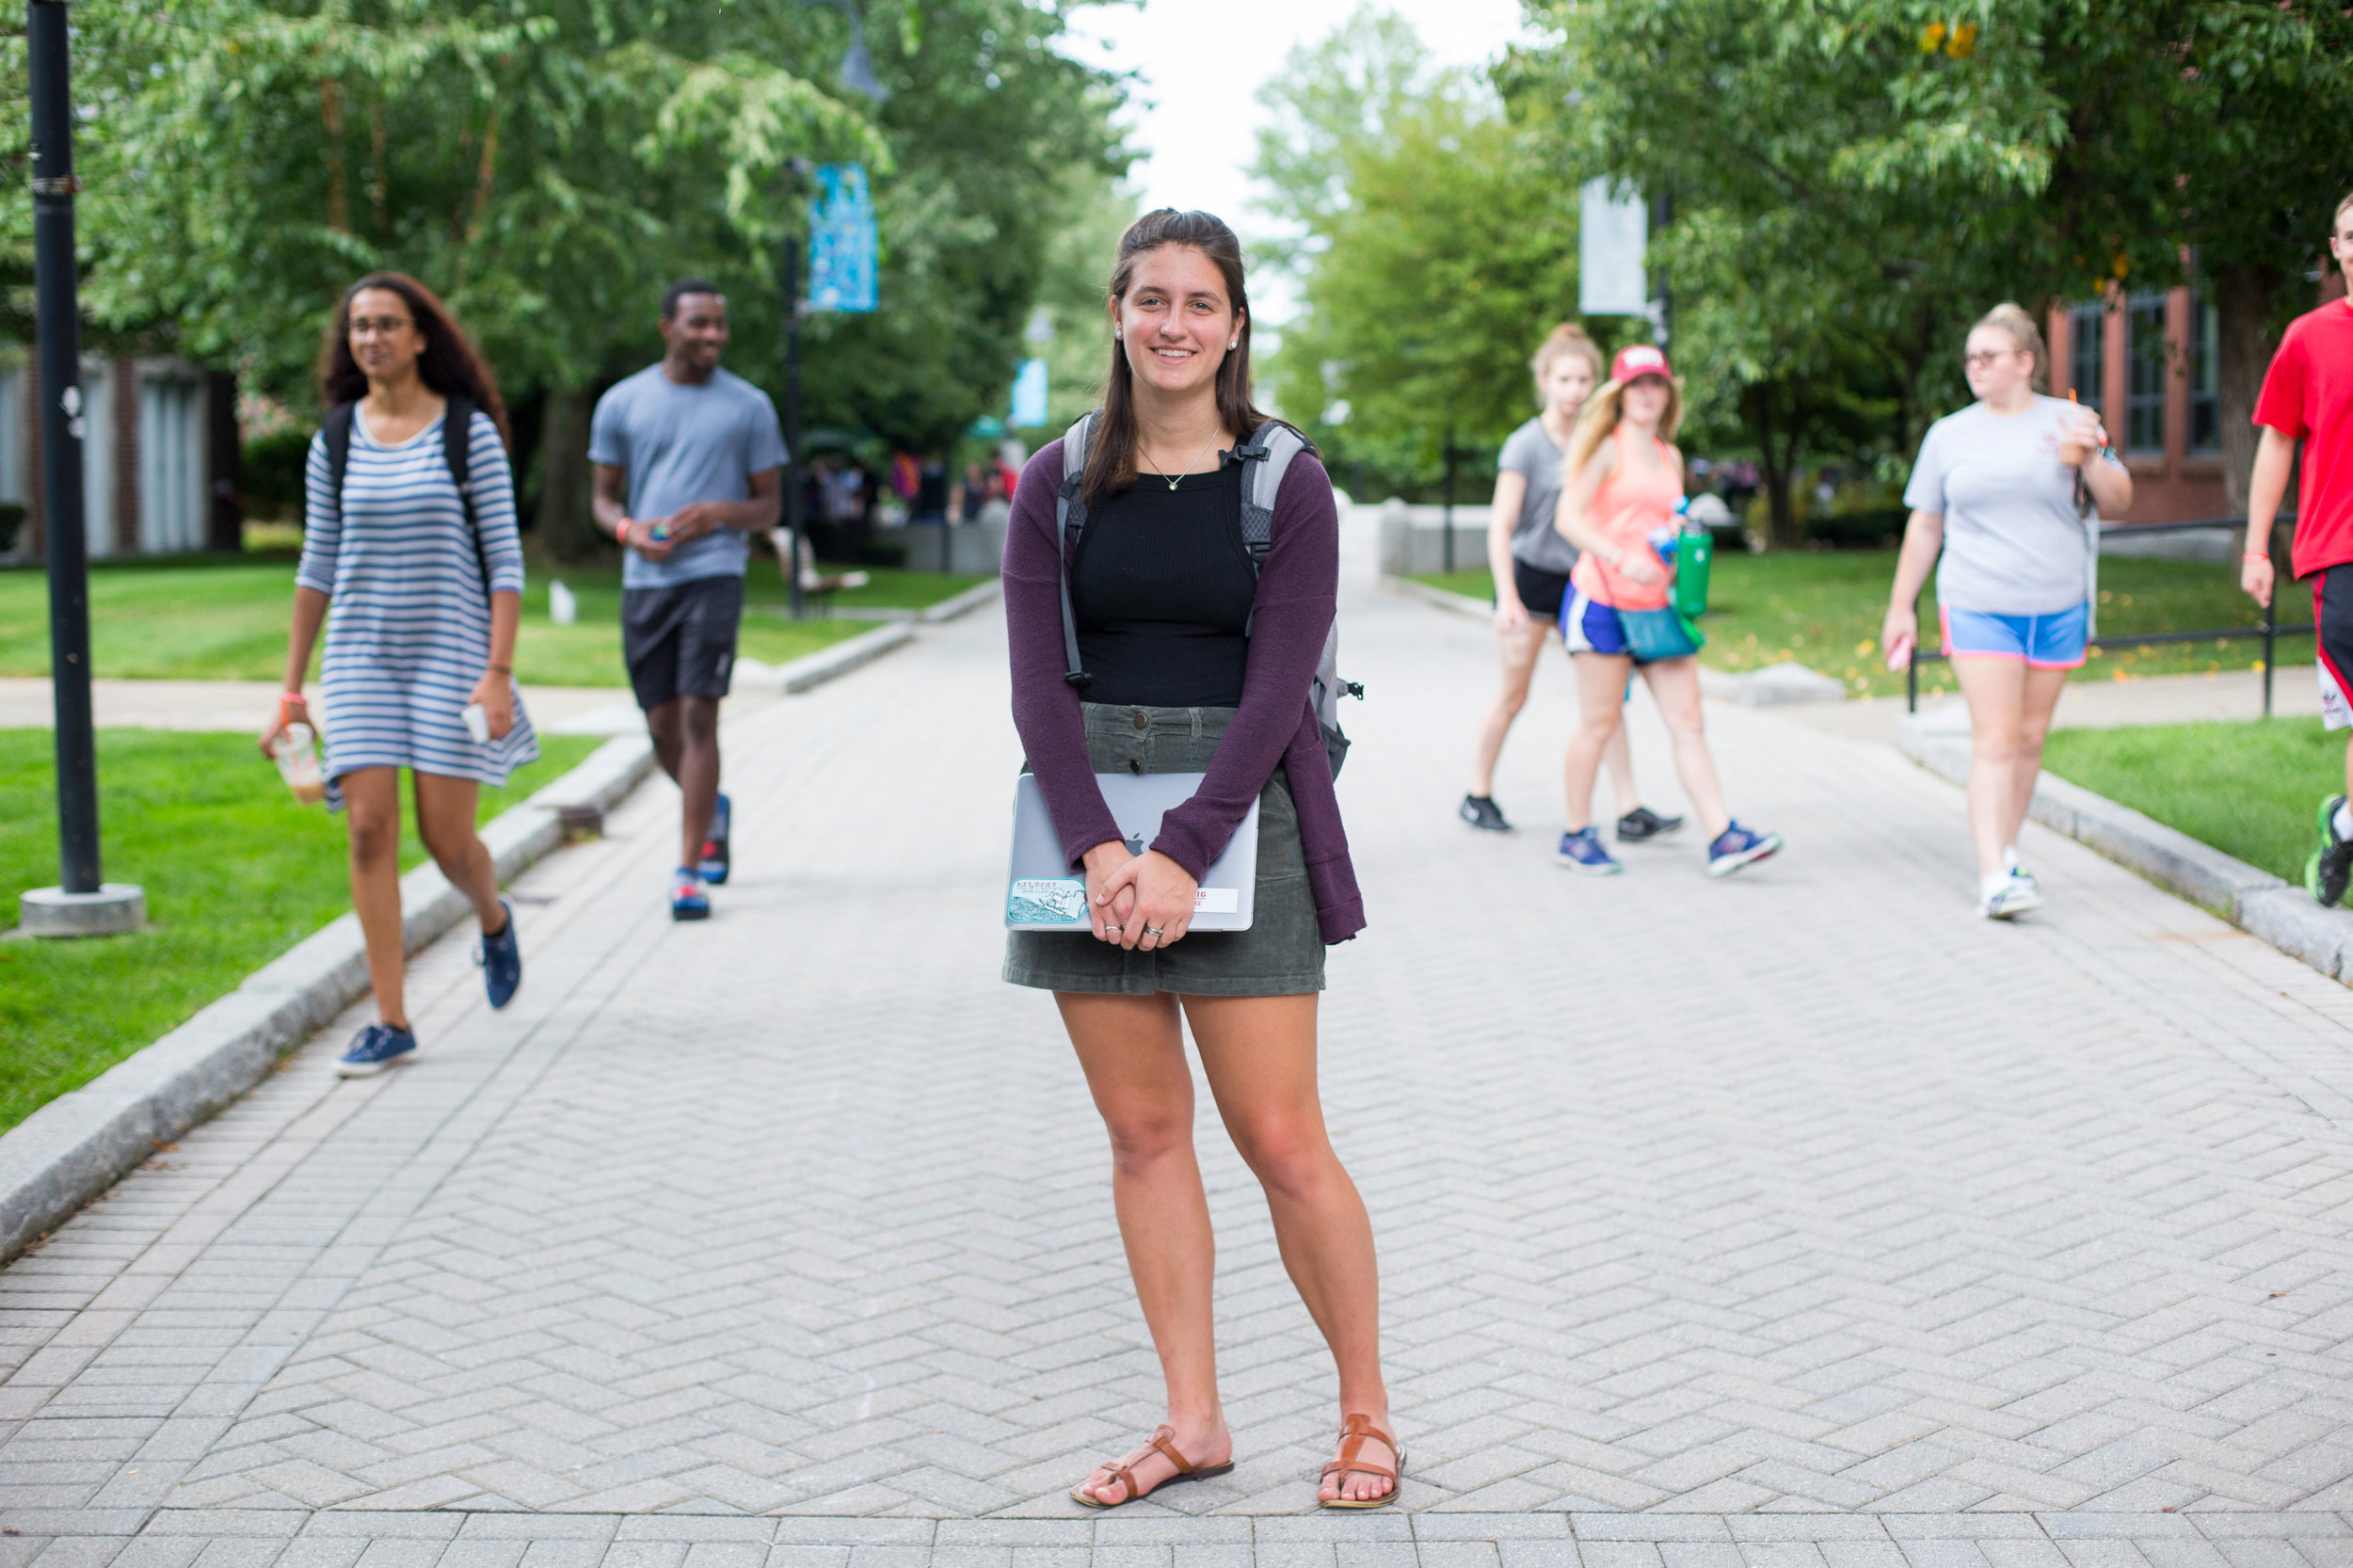 Michelle Santacreu, a freshman at Worcester Polytechnic Institute, poses for a photo on the school's campus in Worcester, Massachusetts on September 15, 2017. Santacreu who intends to major in computer science, is one of the many women at the school who are helping close the gender gap that is found in STEM programs.